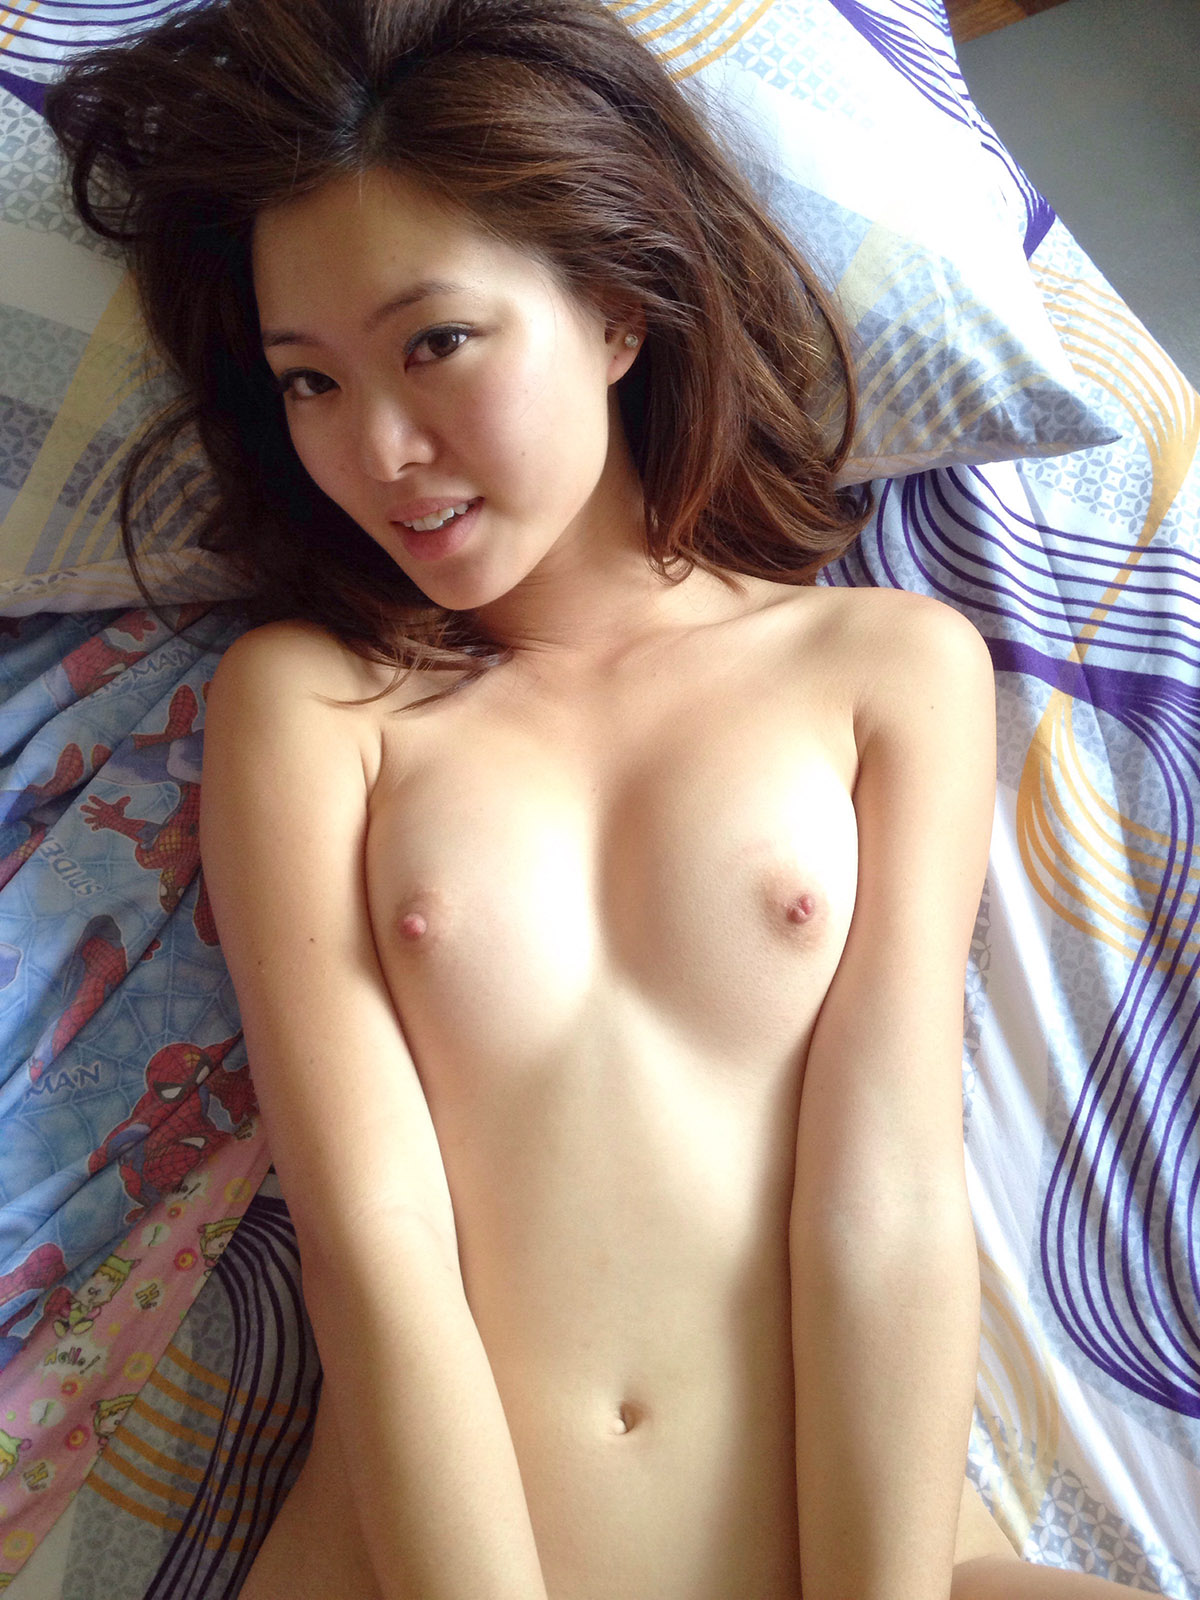 Pussy Christabel Chua (bellywellyjelly) nude photos 2019